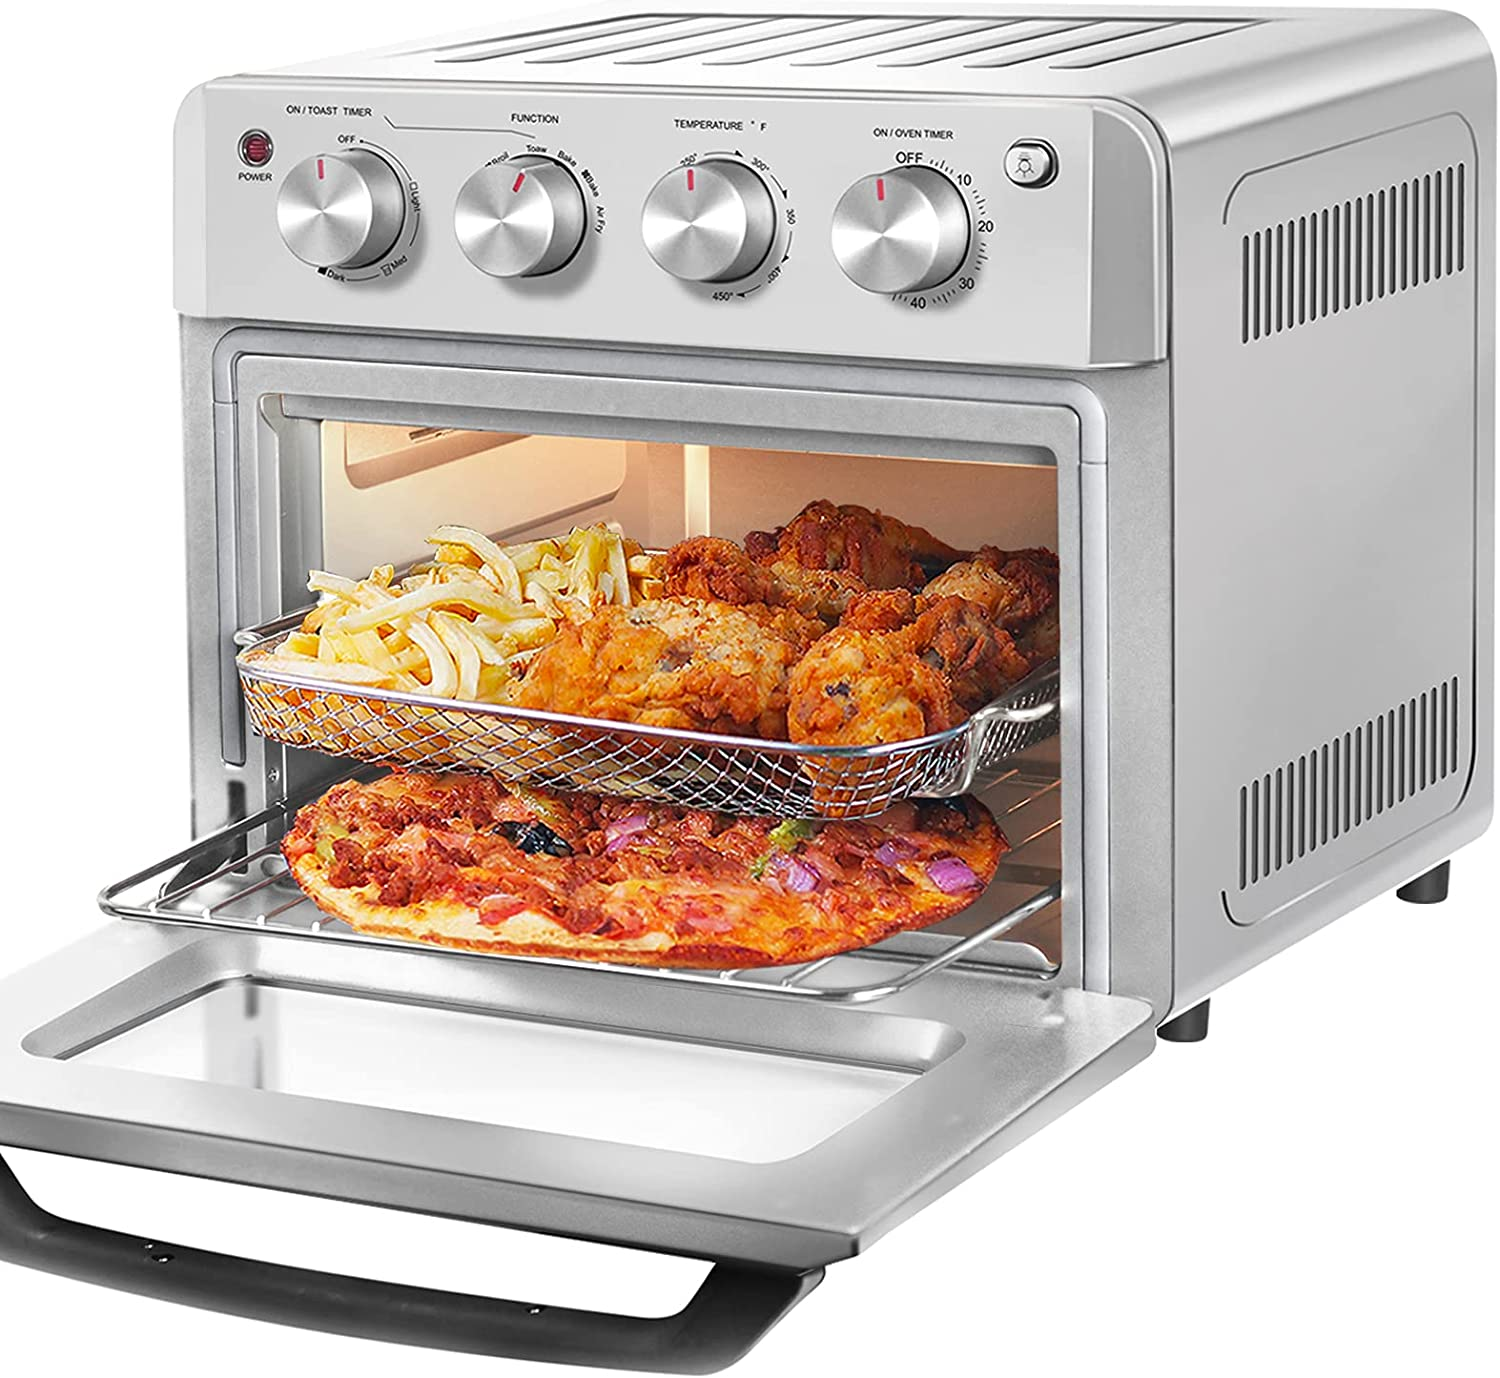 Large Air Fryer Toaster Oven 19 QT, DAWAD Countertop Convection Oven Airfryer with 33 Original Recipes, Stainless Steel